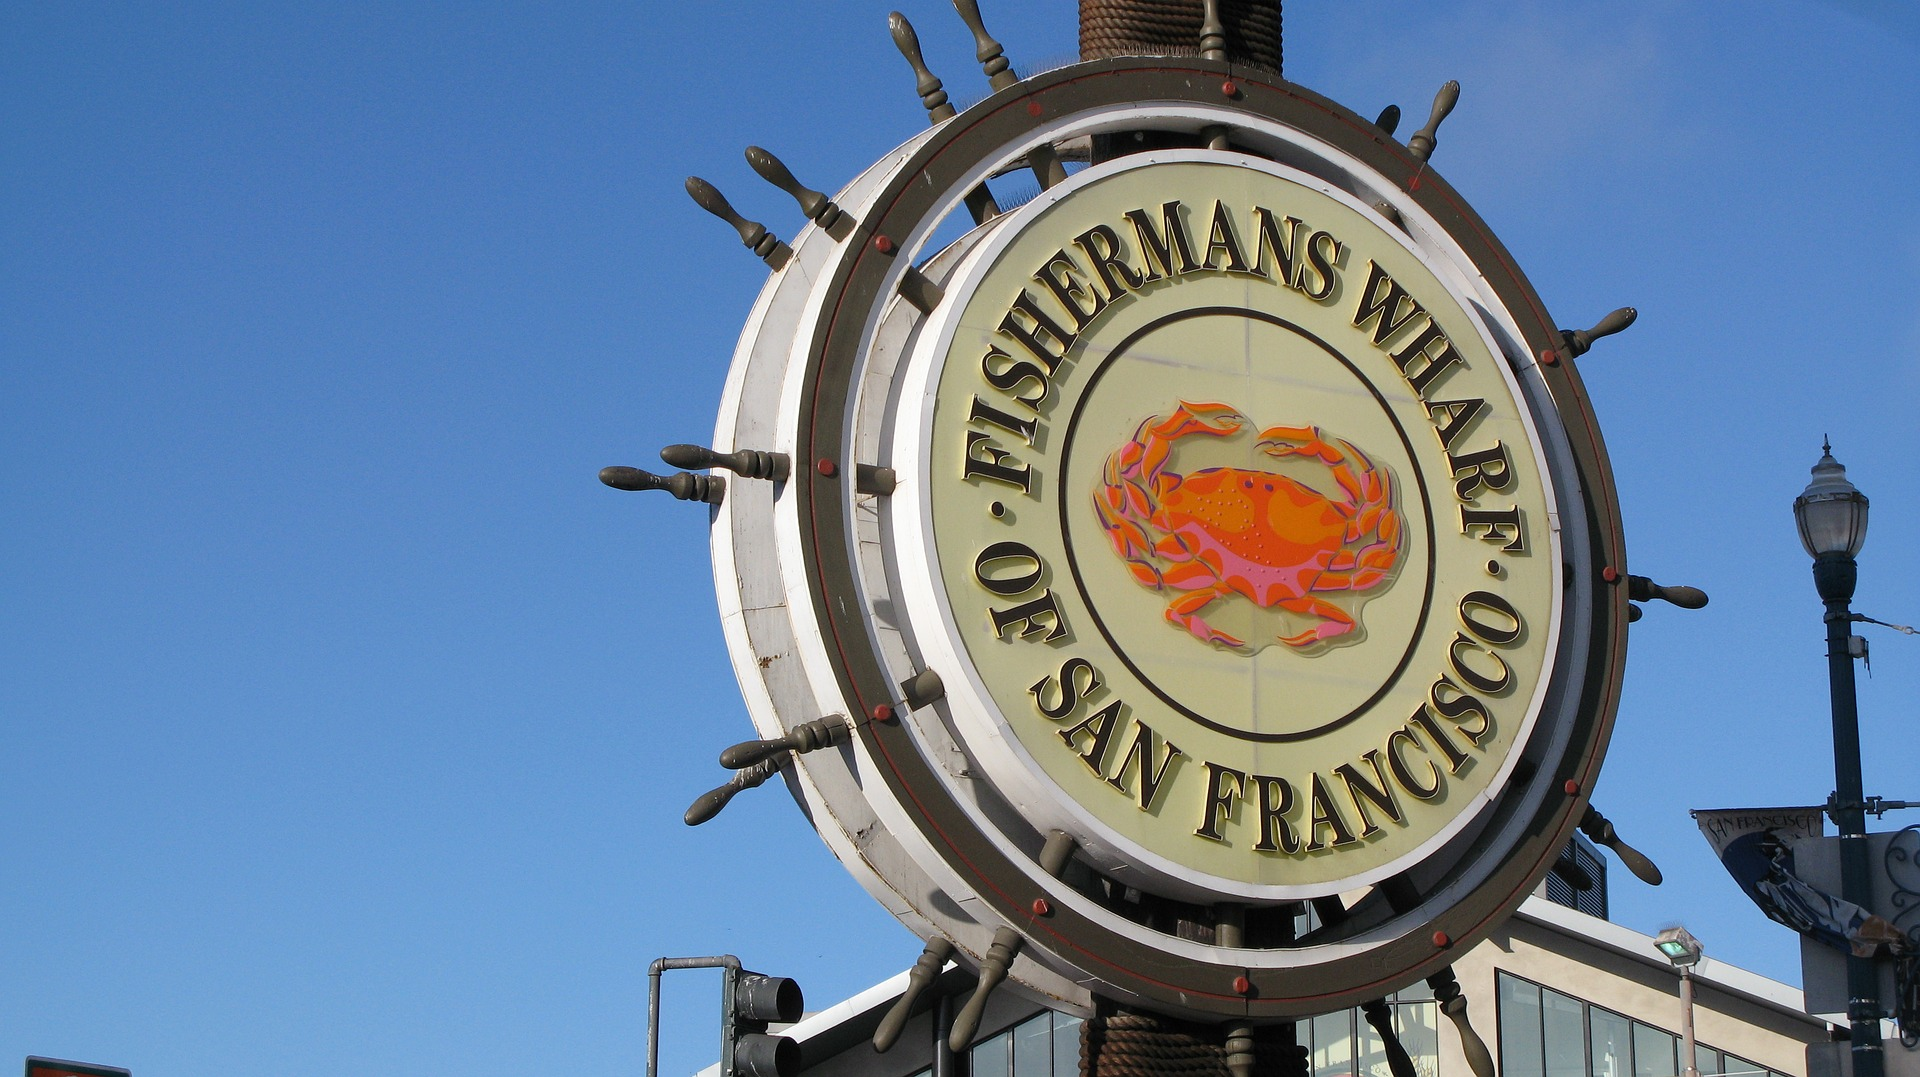 Fisherman's Wharf, San Francisco, CA